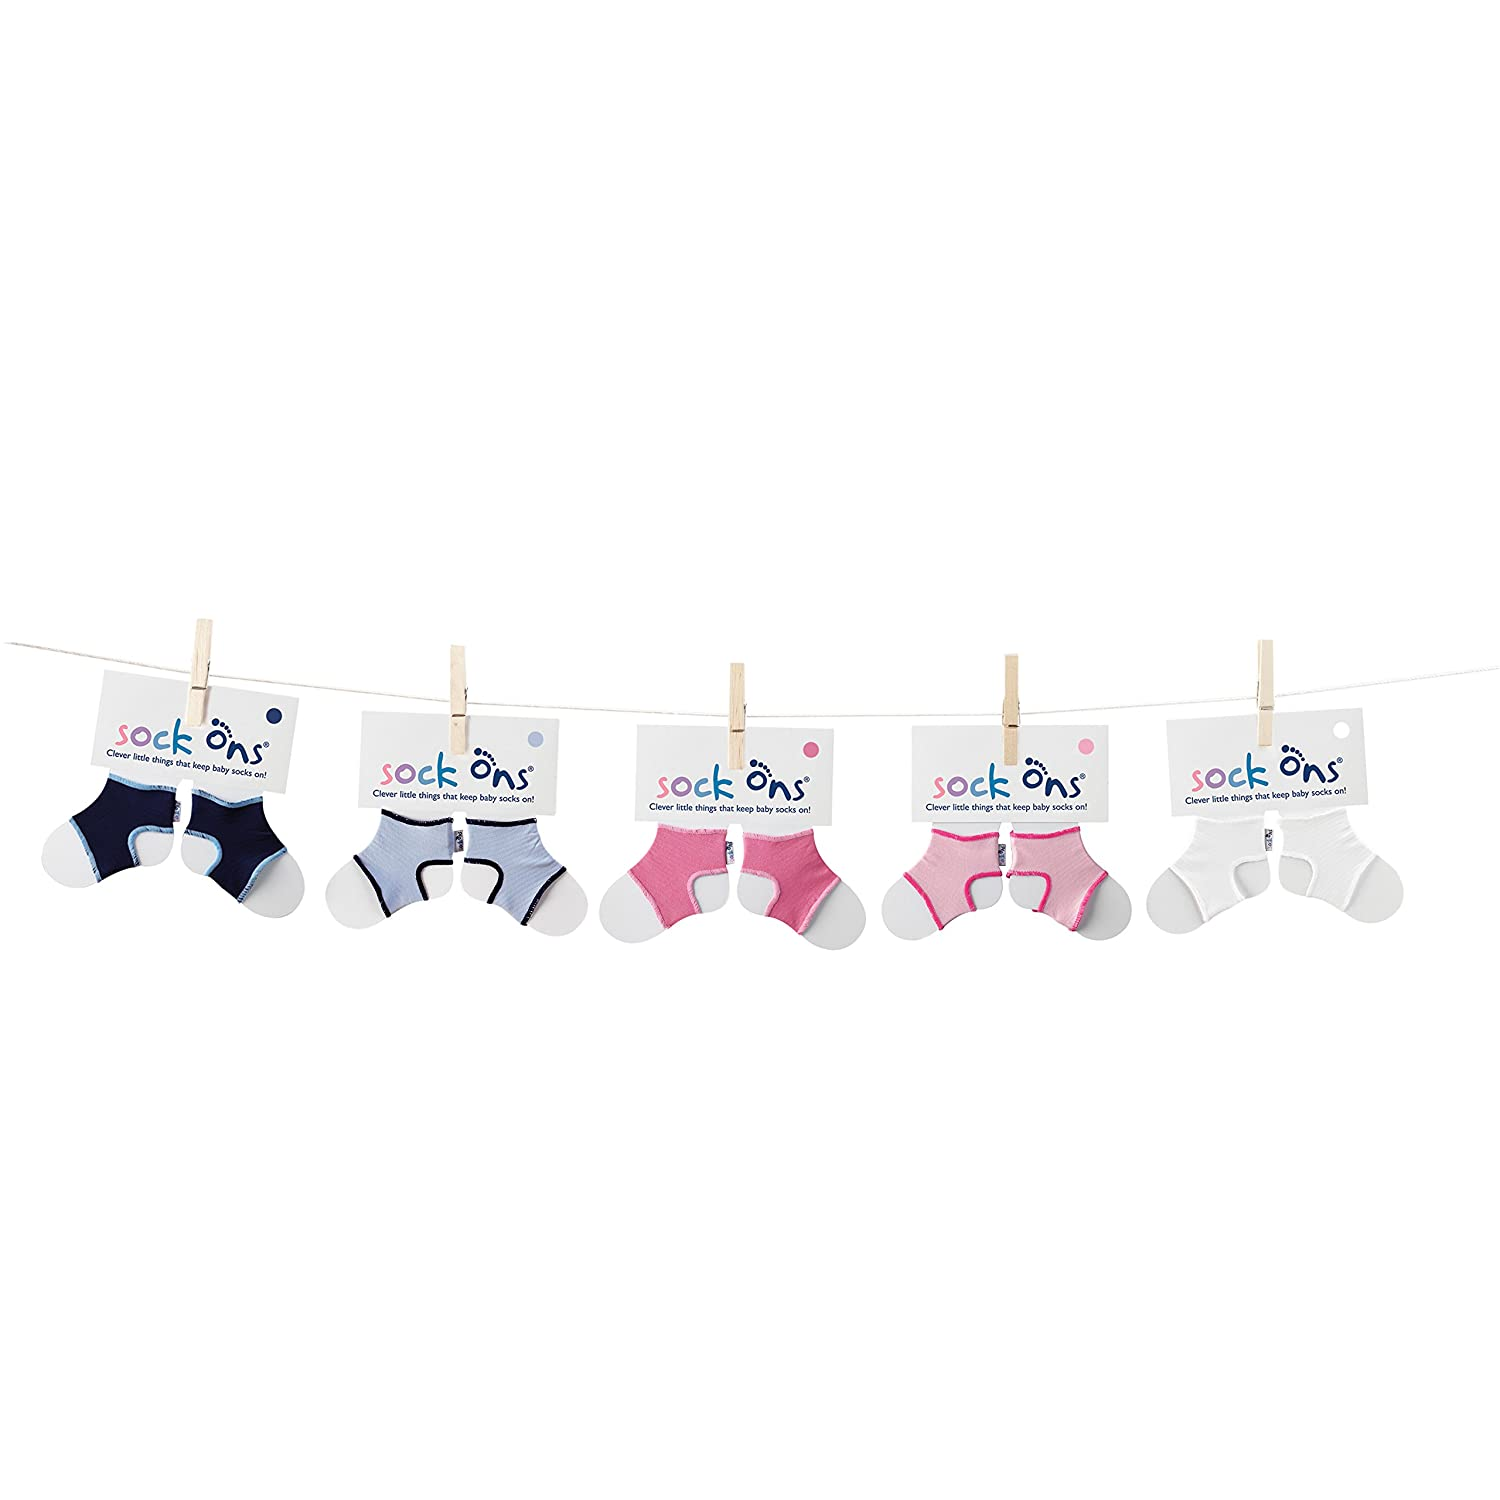 0-6m White Sock Ons Clever Little Things That Keep Baby Socks On